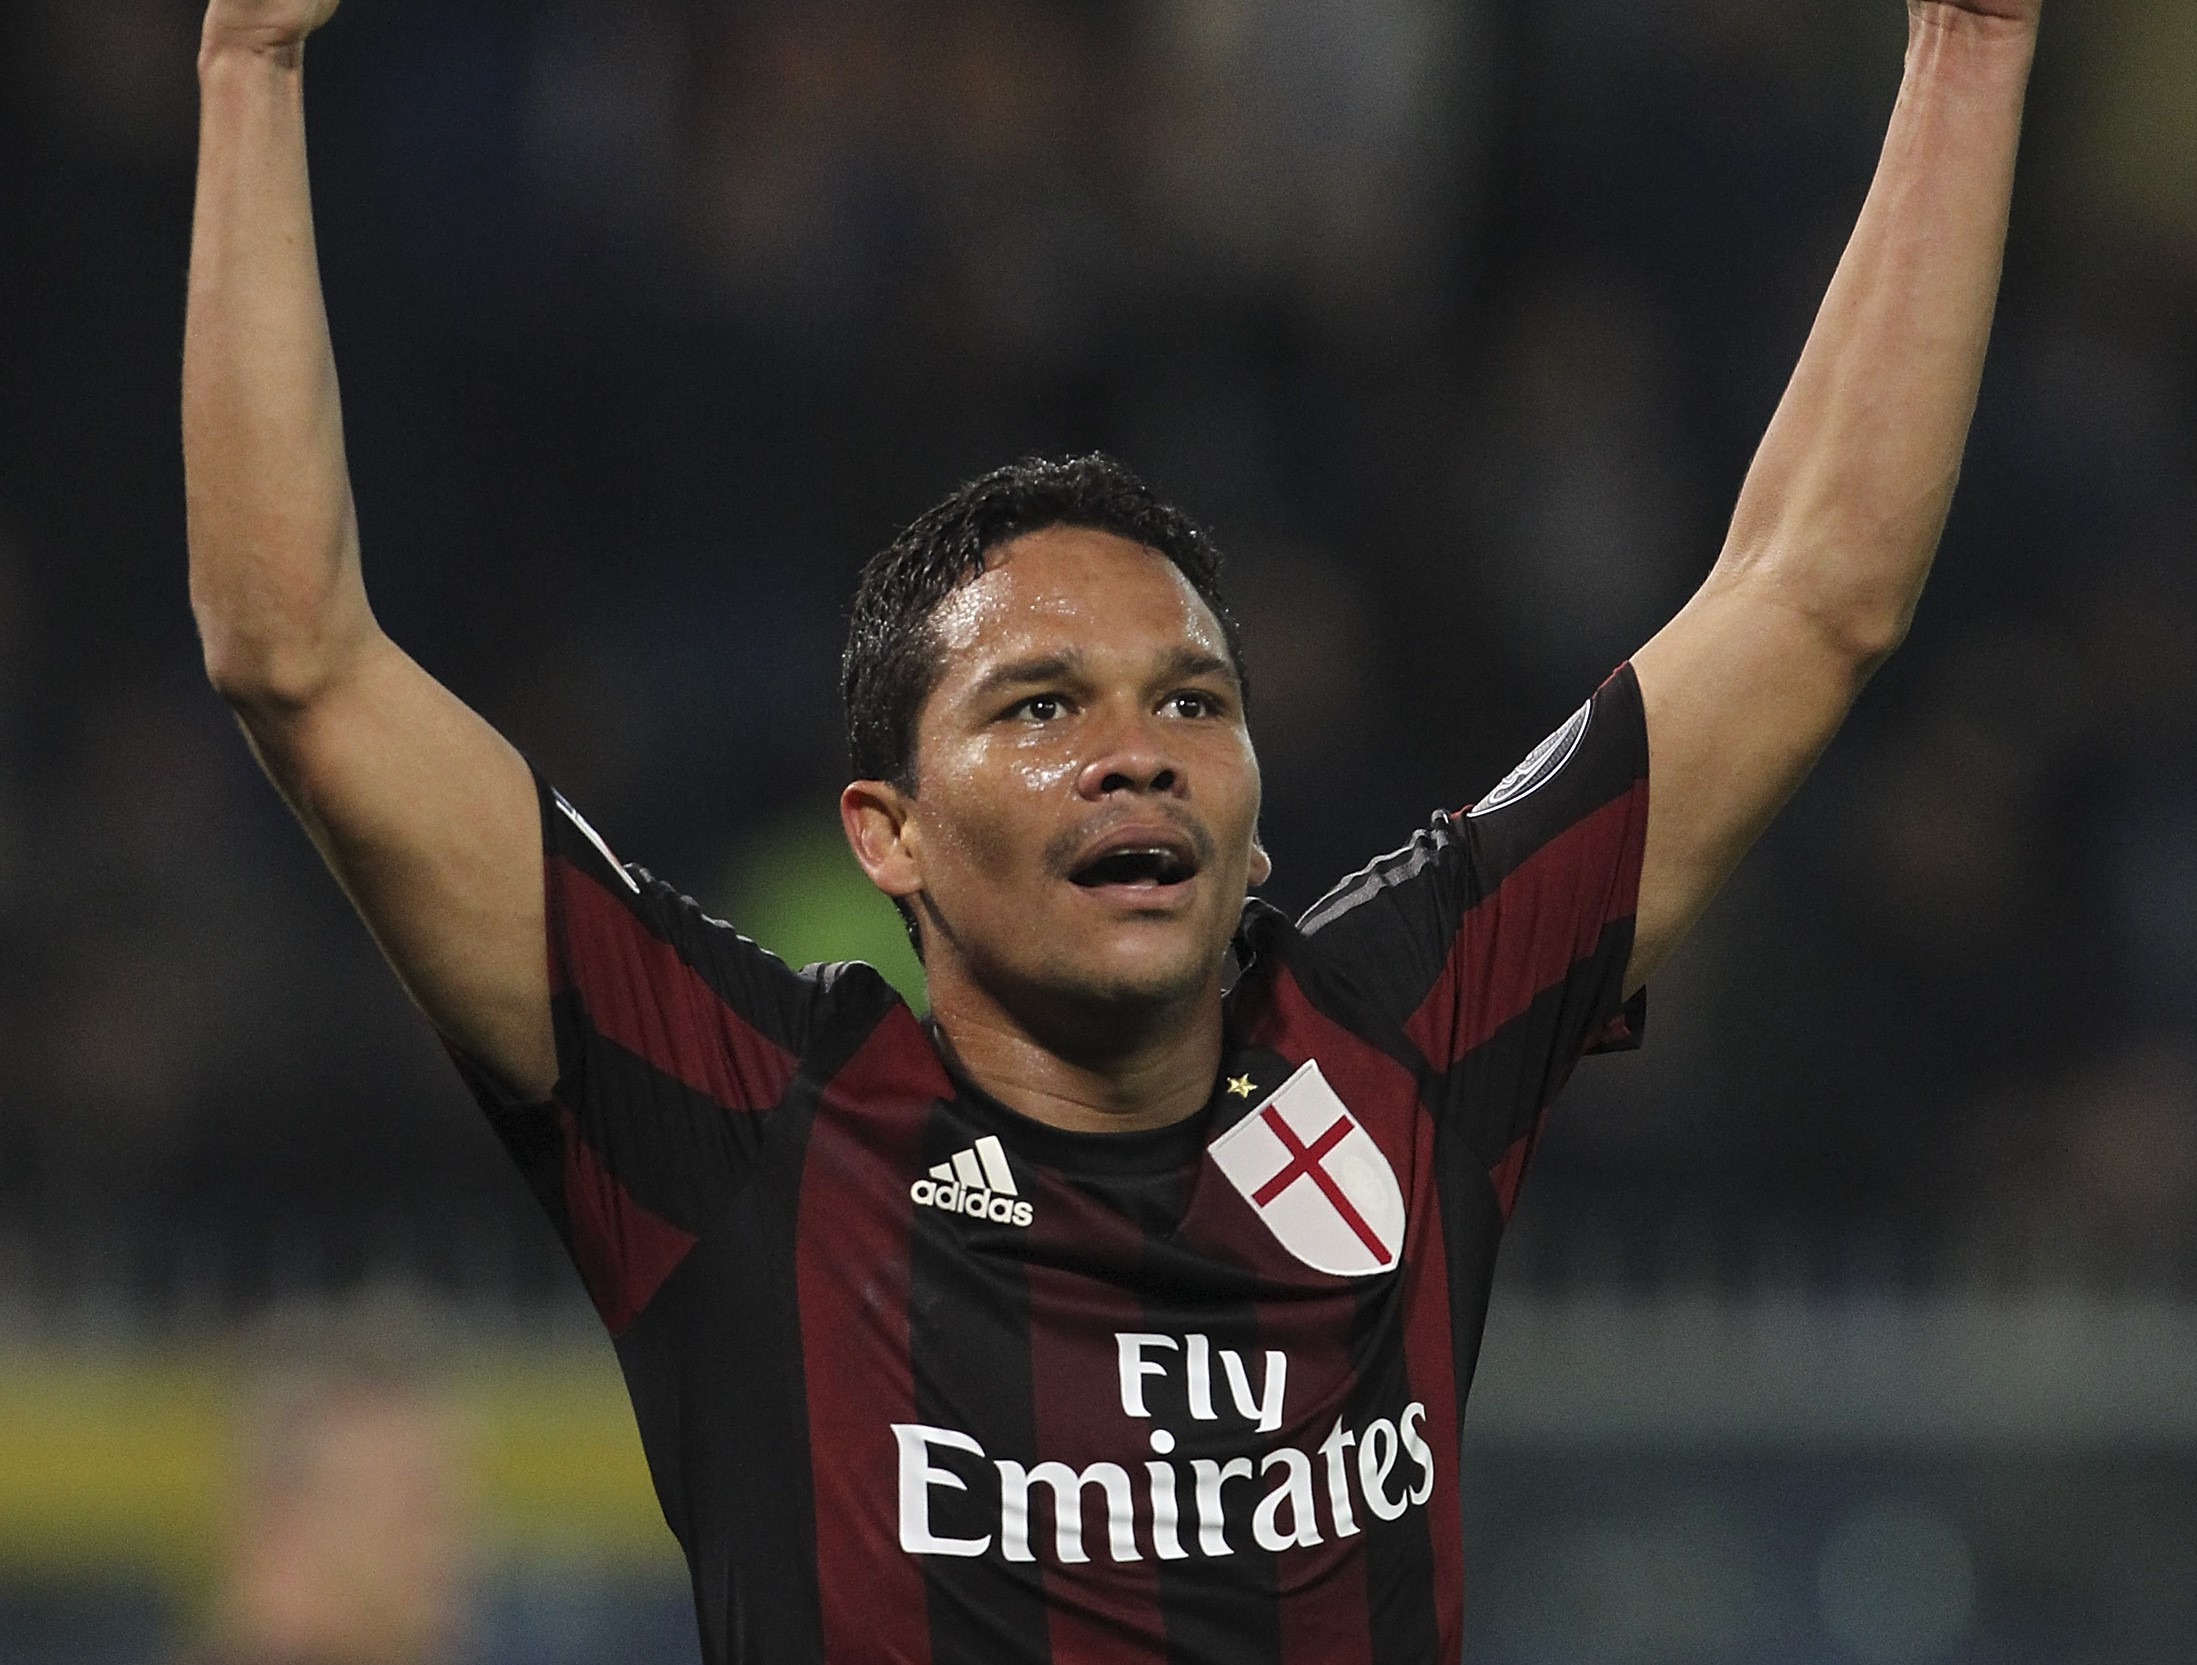 Arsenal transfer target Carlos Bacca has offers to leave, says agent